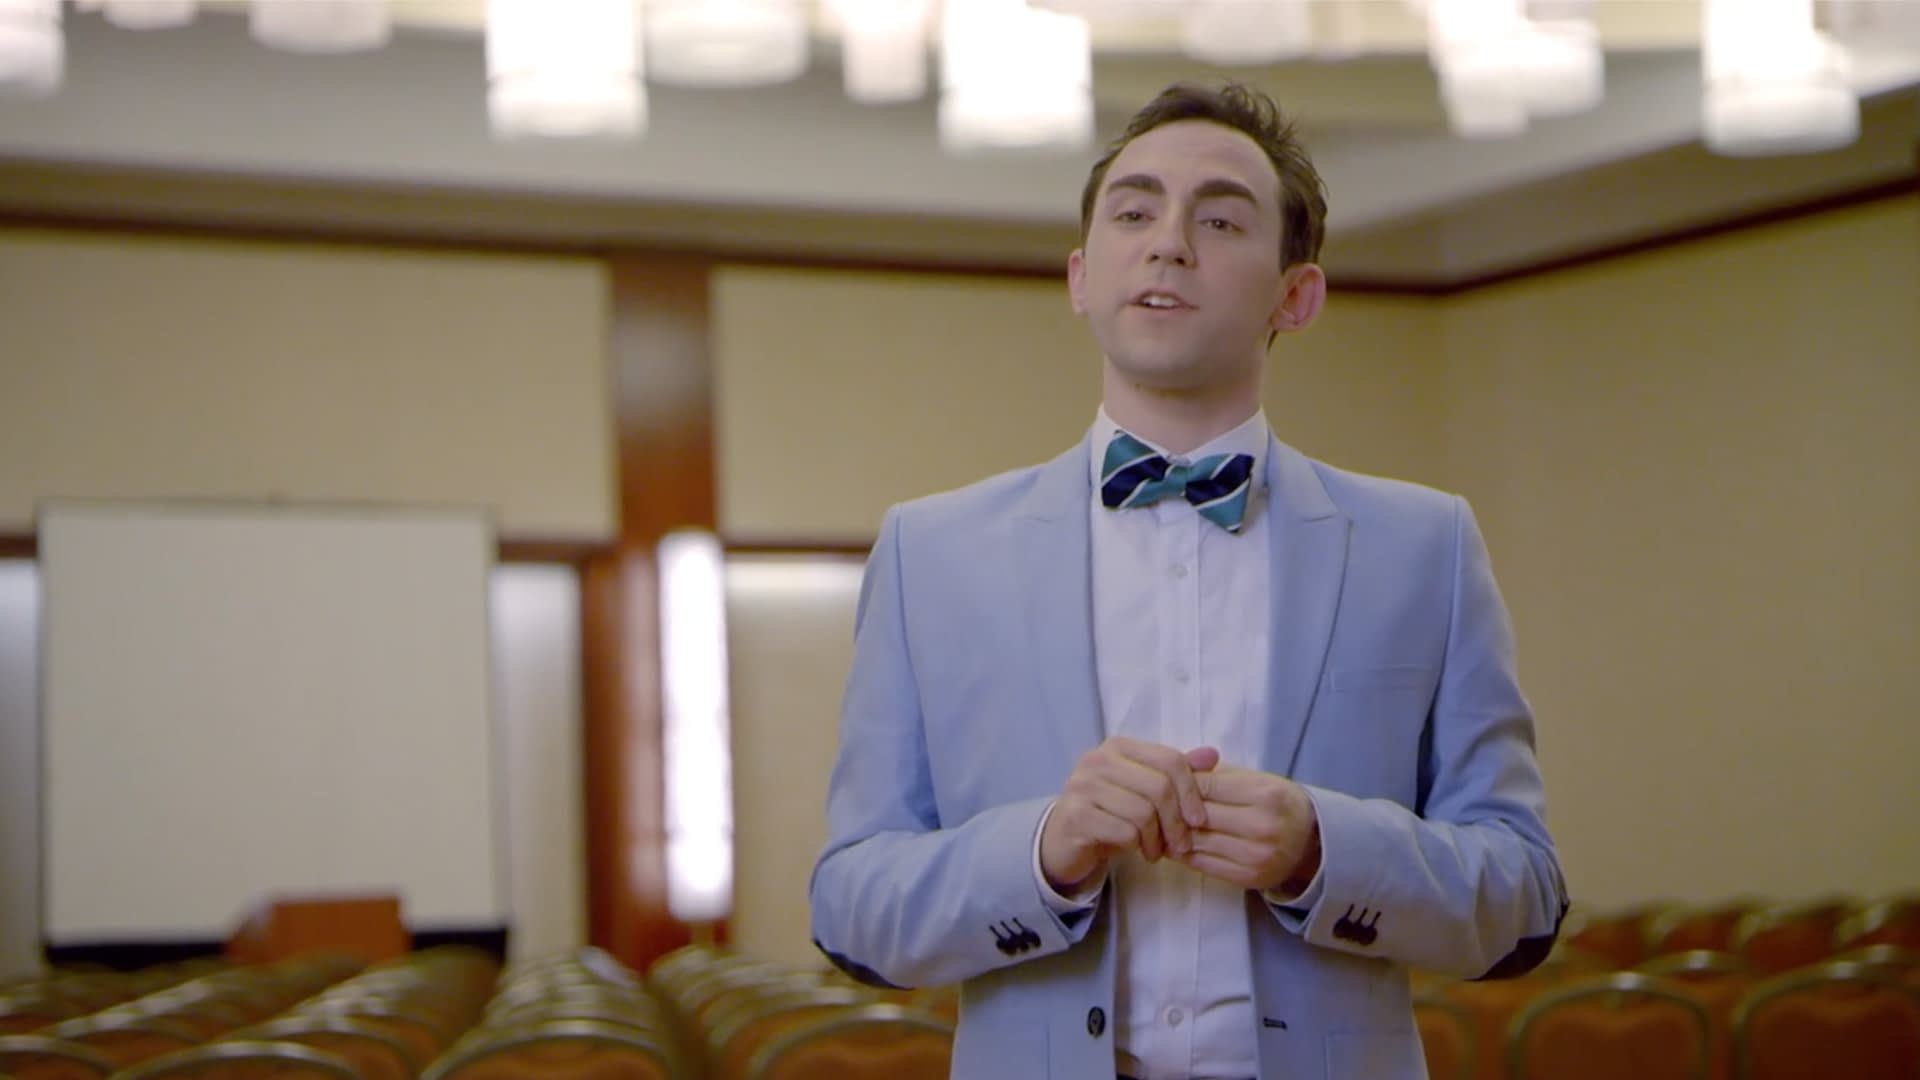 Man in empty auditorium in a blue suit and bowtie.